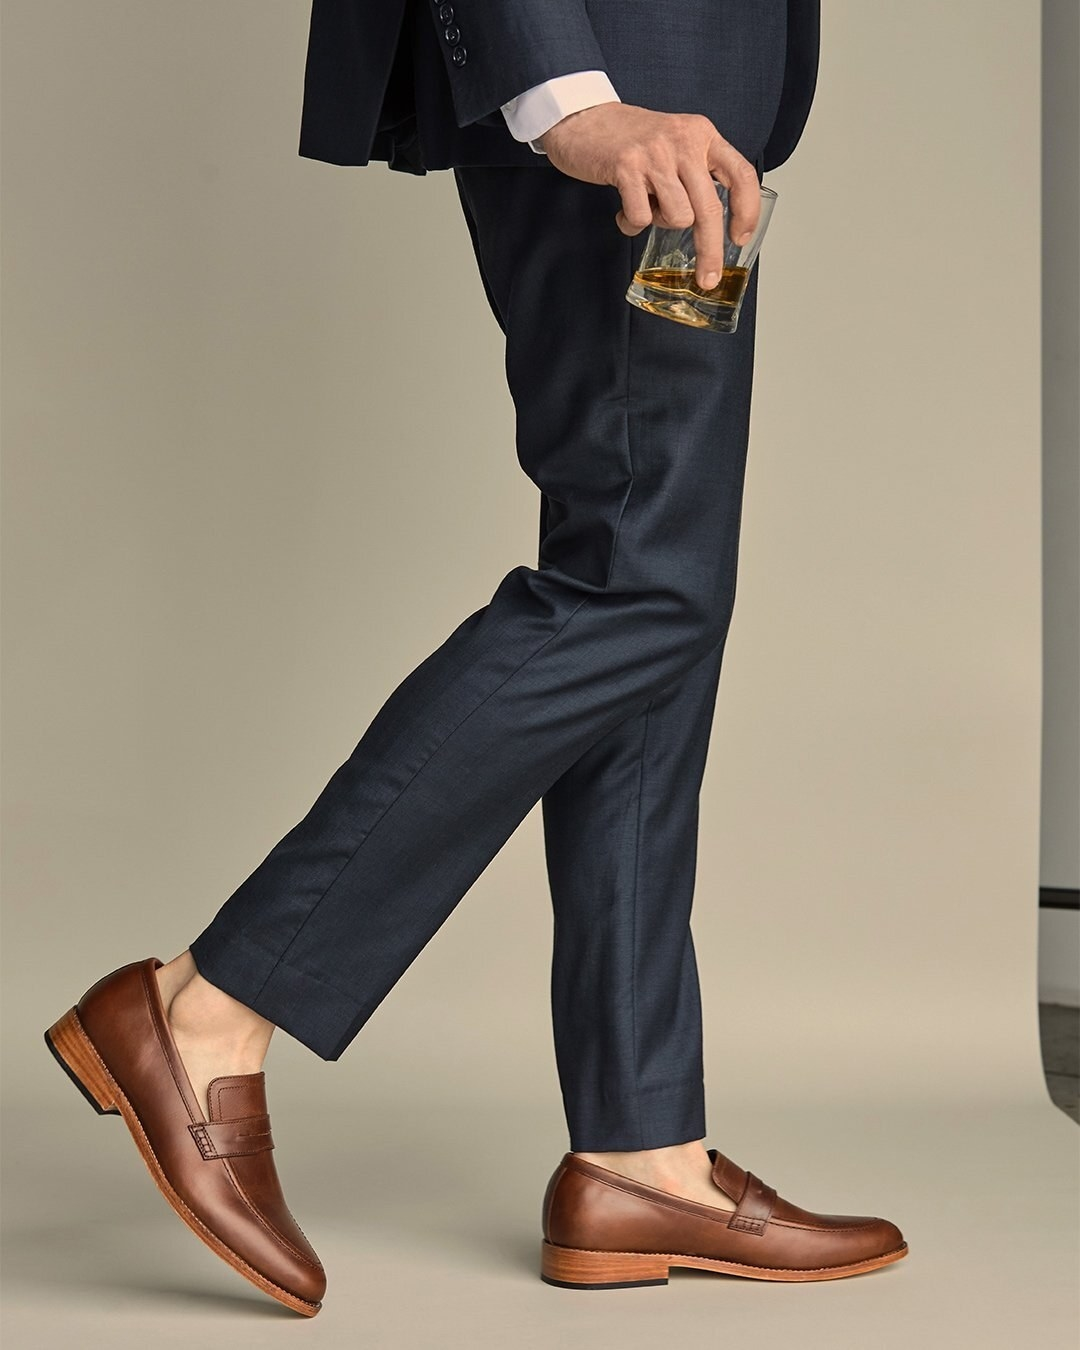 A model wearing the loafers with no-show socks and dress pants